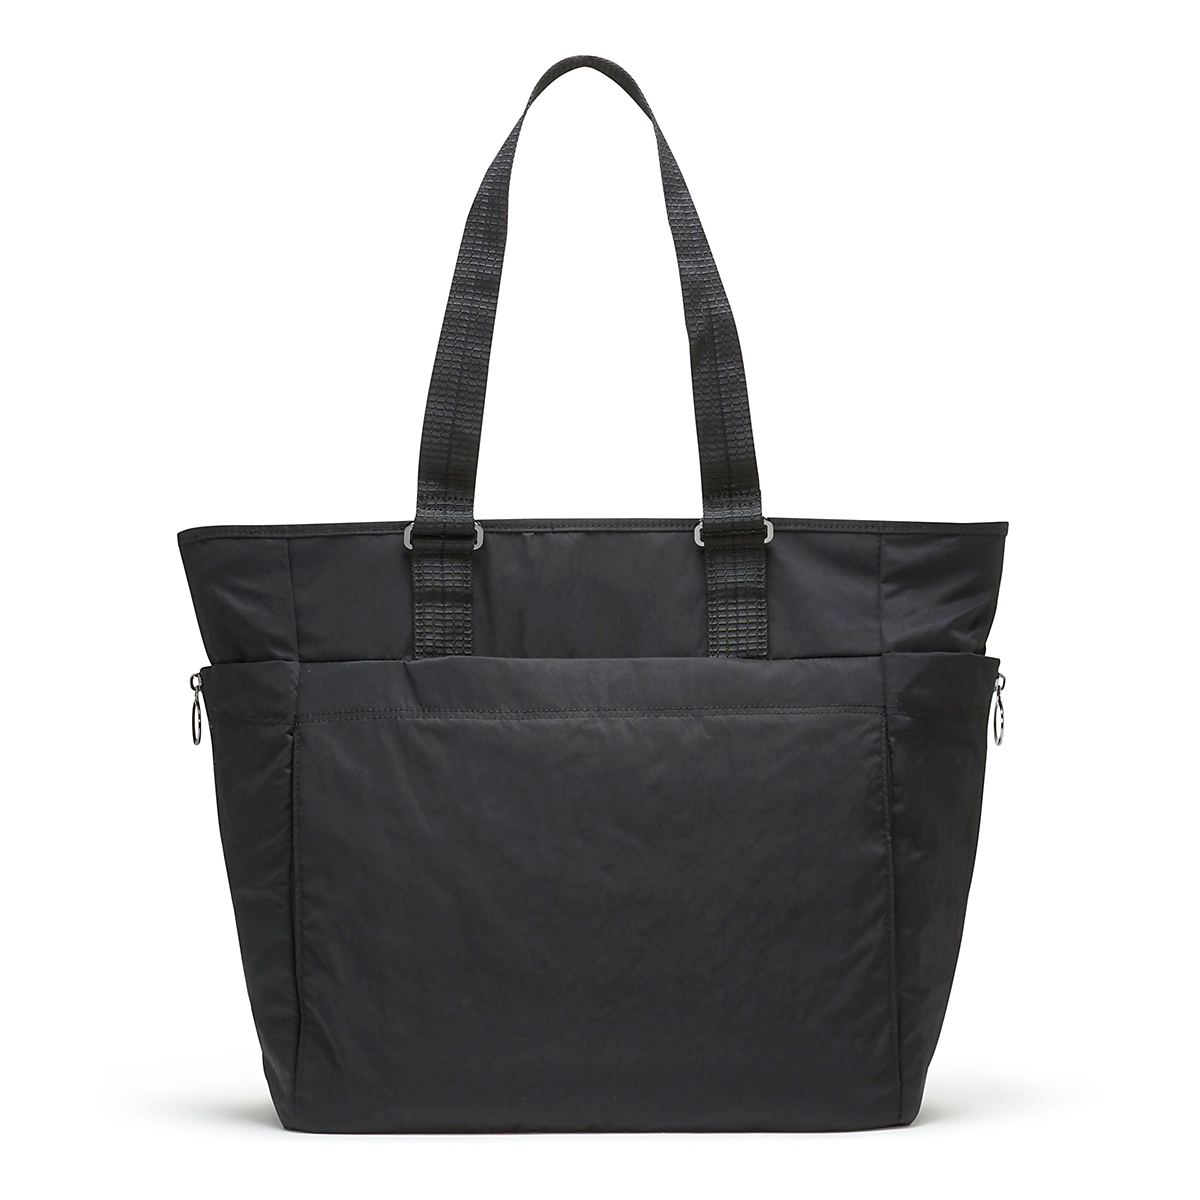 Women's Nike One Luxe Tote Bag - Color: Black, Black, large, image 2